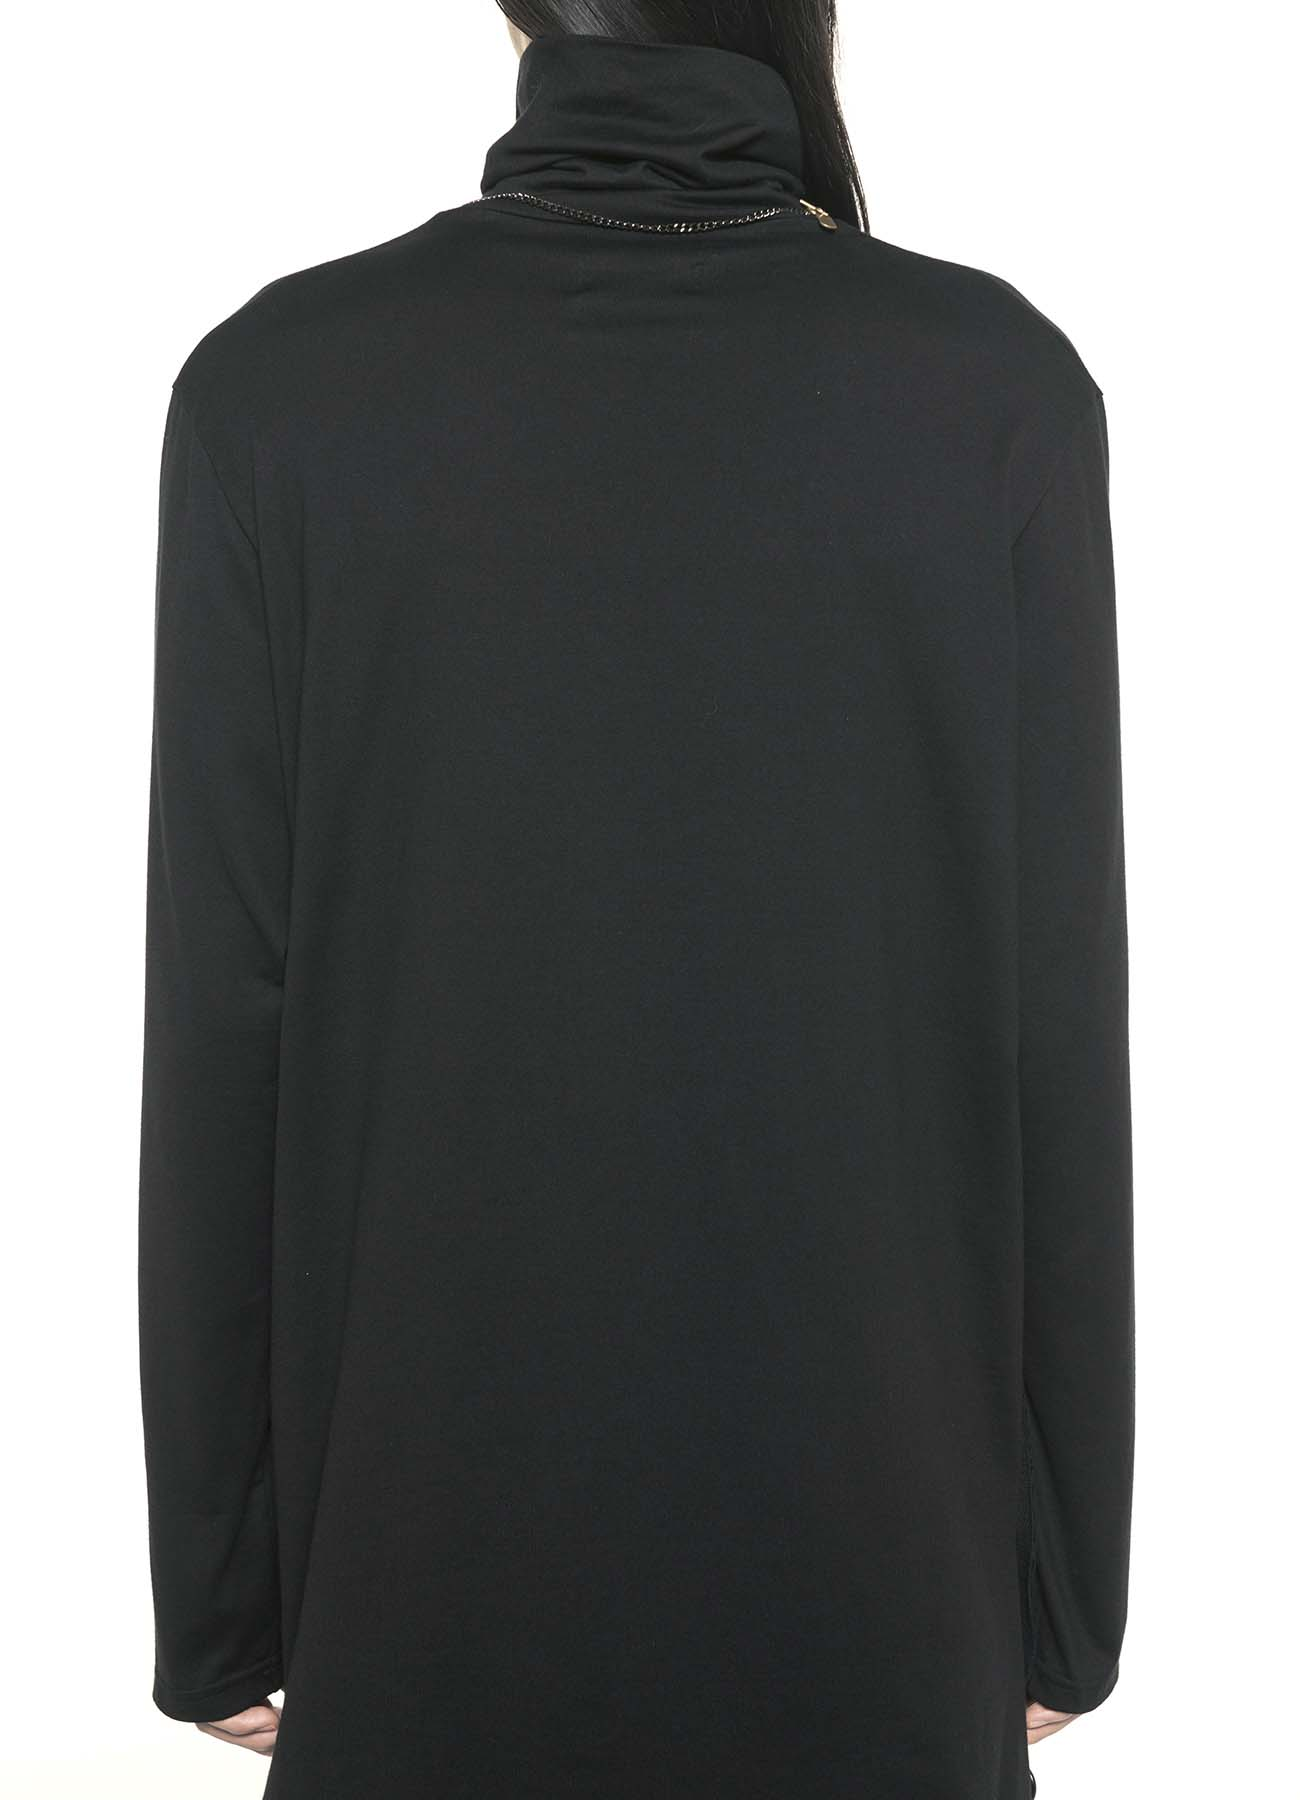 40/2 Jersey Slit Button Turtle Long Big Pullover